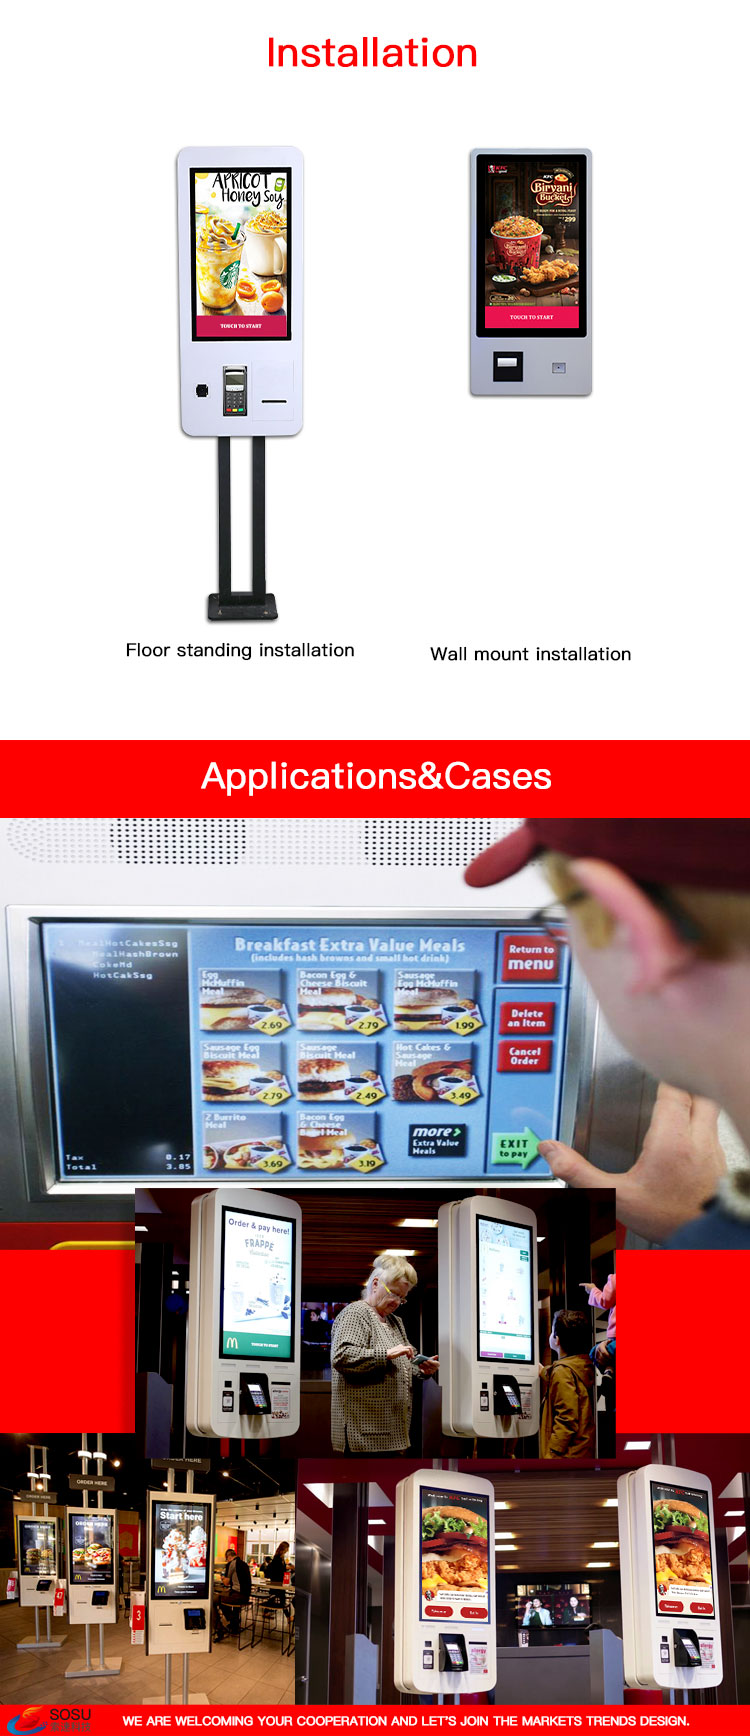 Display Self-order Kiosk